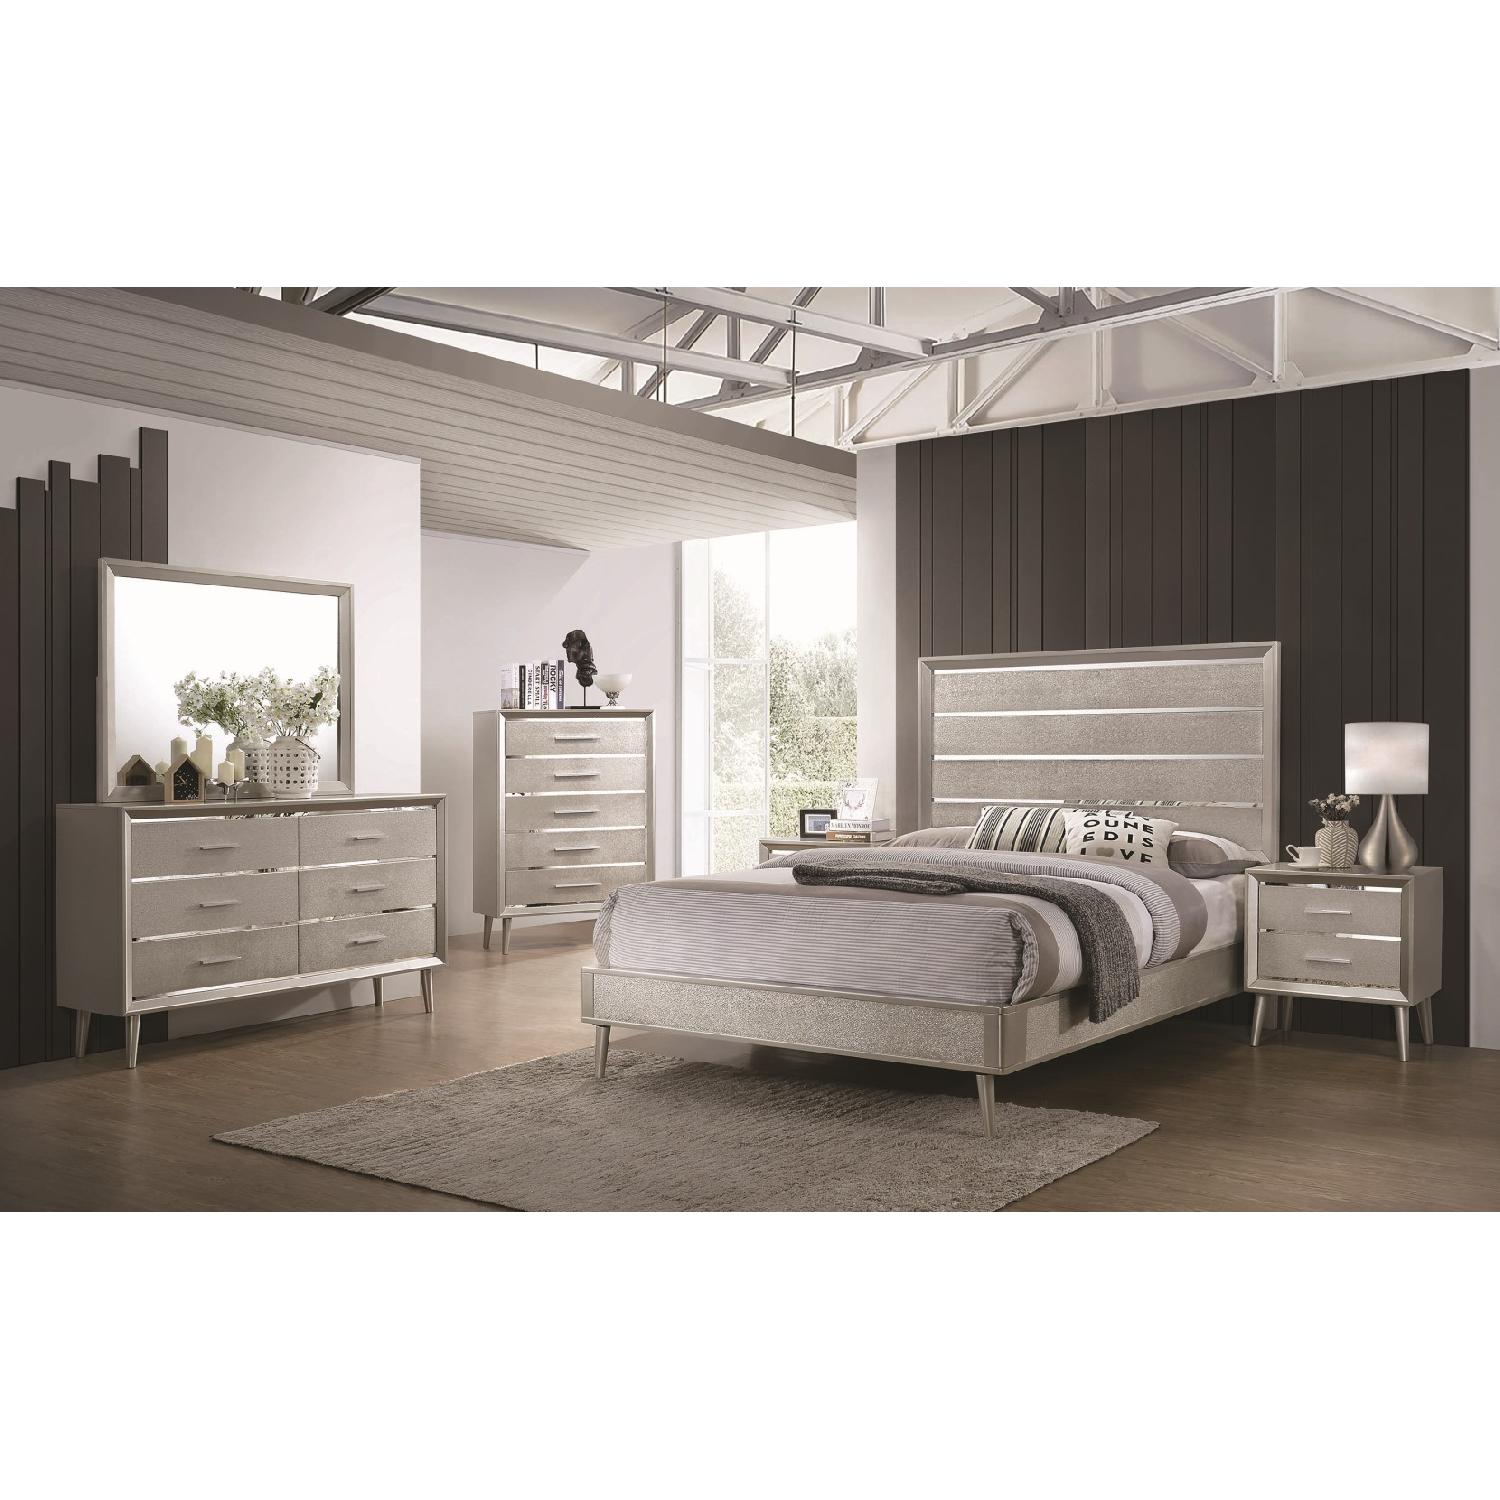 Mid Century Style King Bed in Metallic Silver Glitter Design - image-2